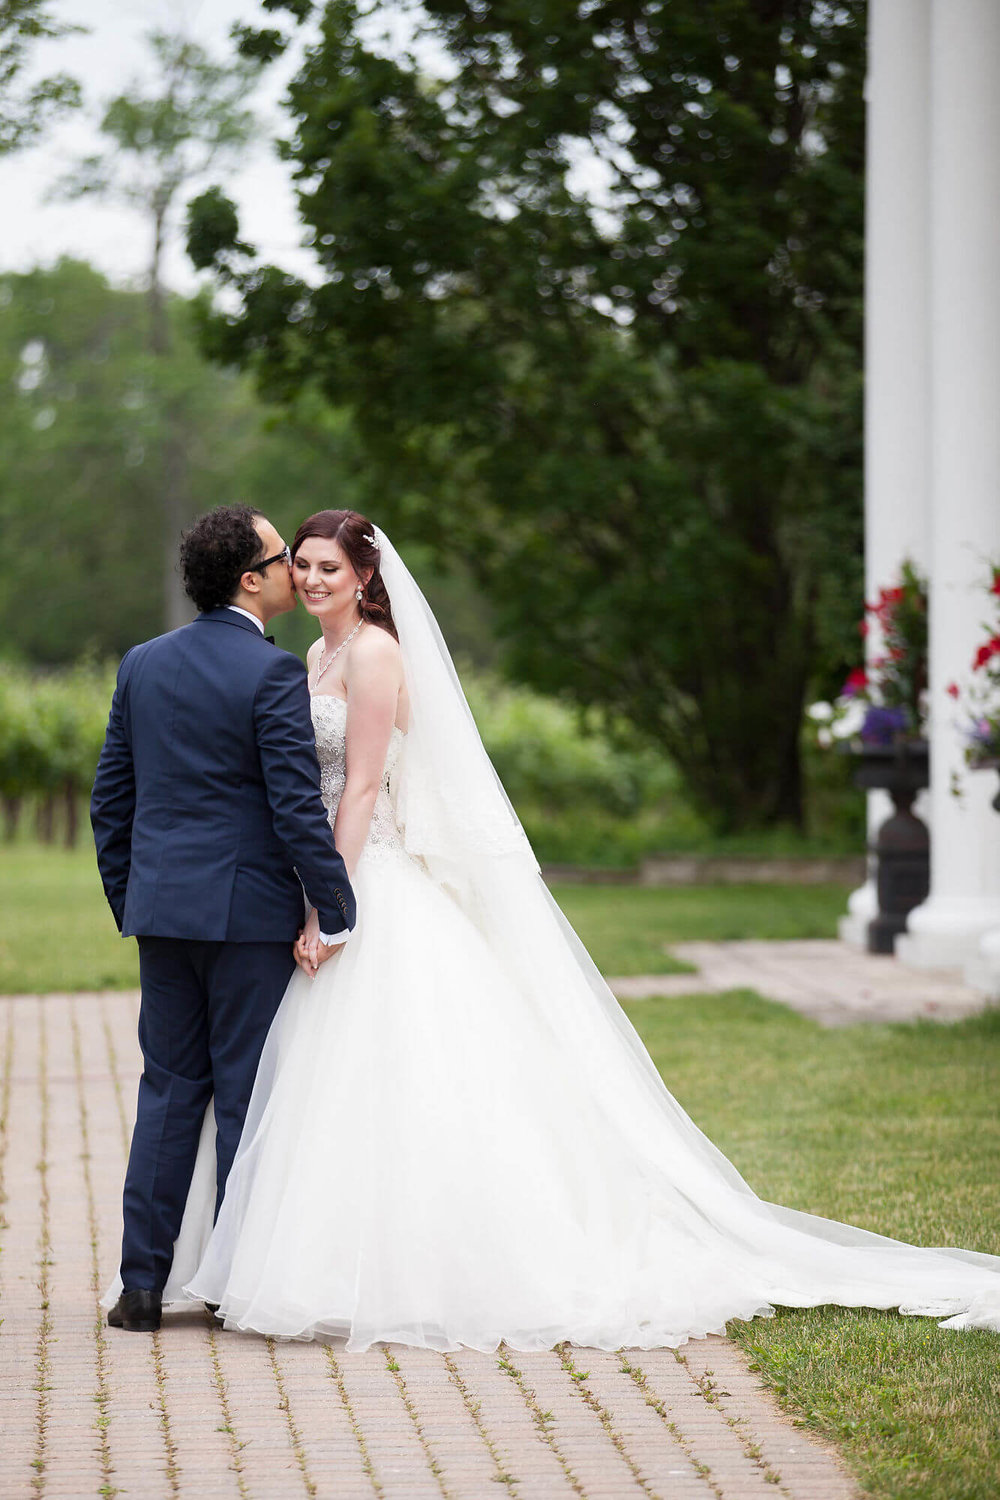 Photo of just married wedding couple with groom kissing bride on the cheek - Historia Wedding and Event Planning